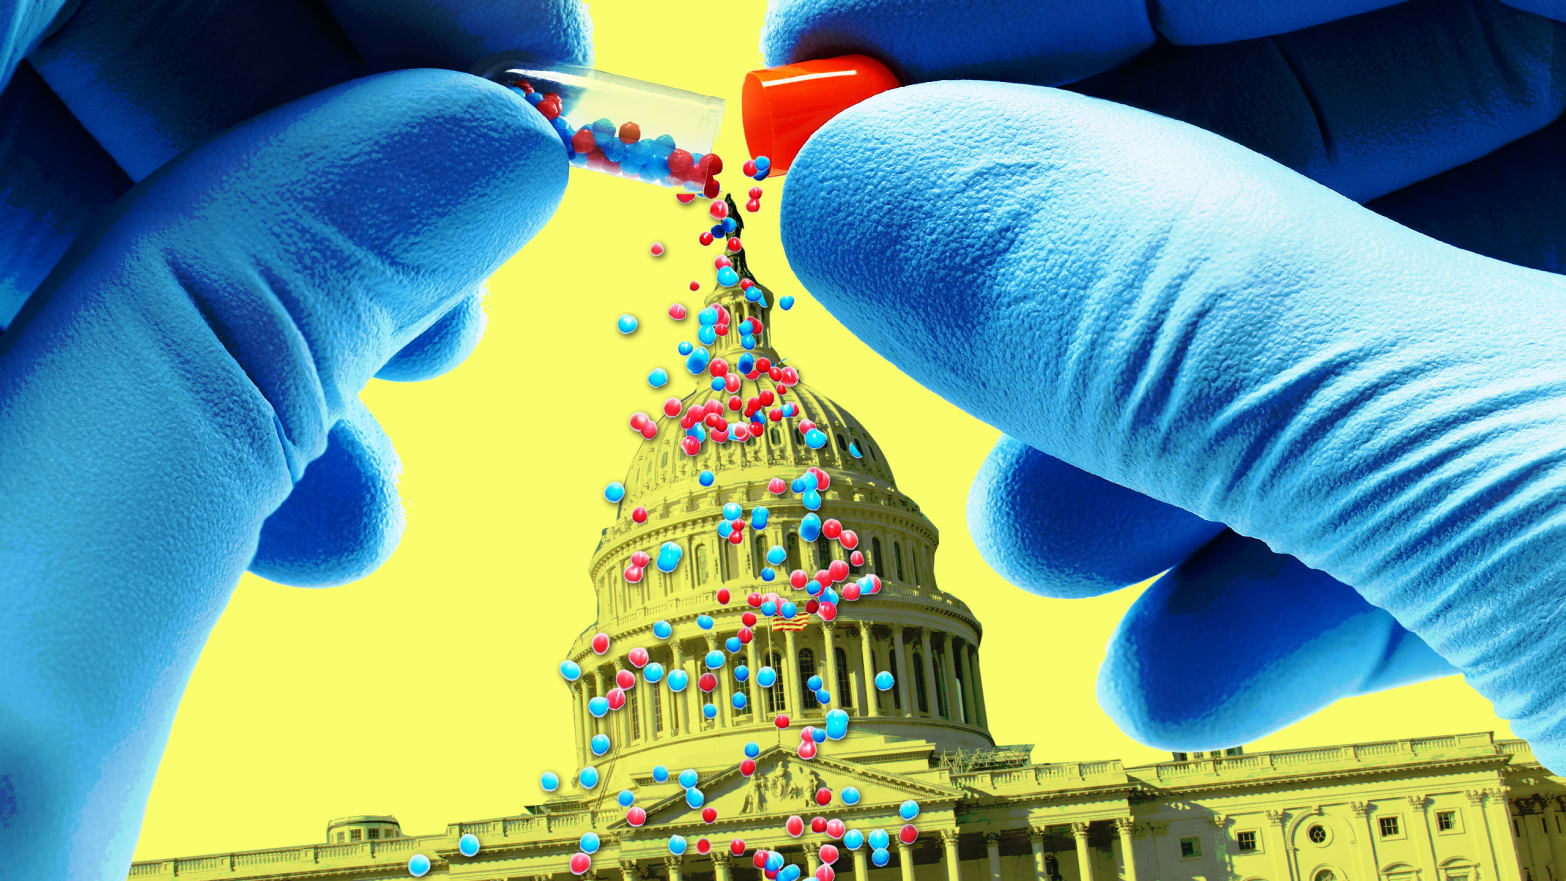 Big Pharma's Government Revolving Door: 'Who Do They Really Work For?'